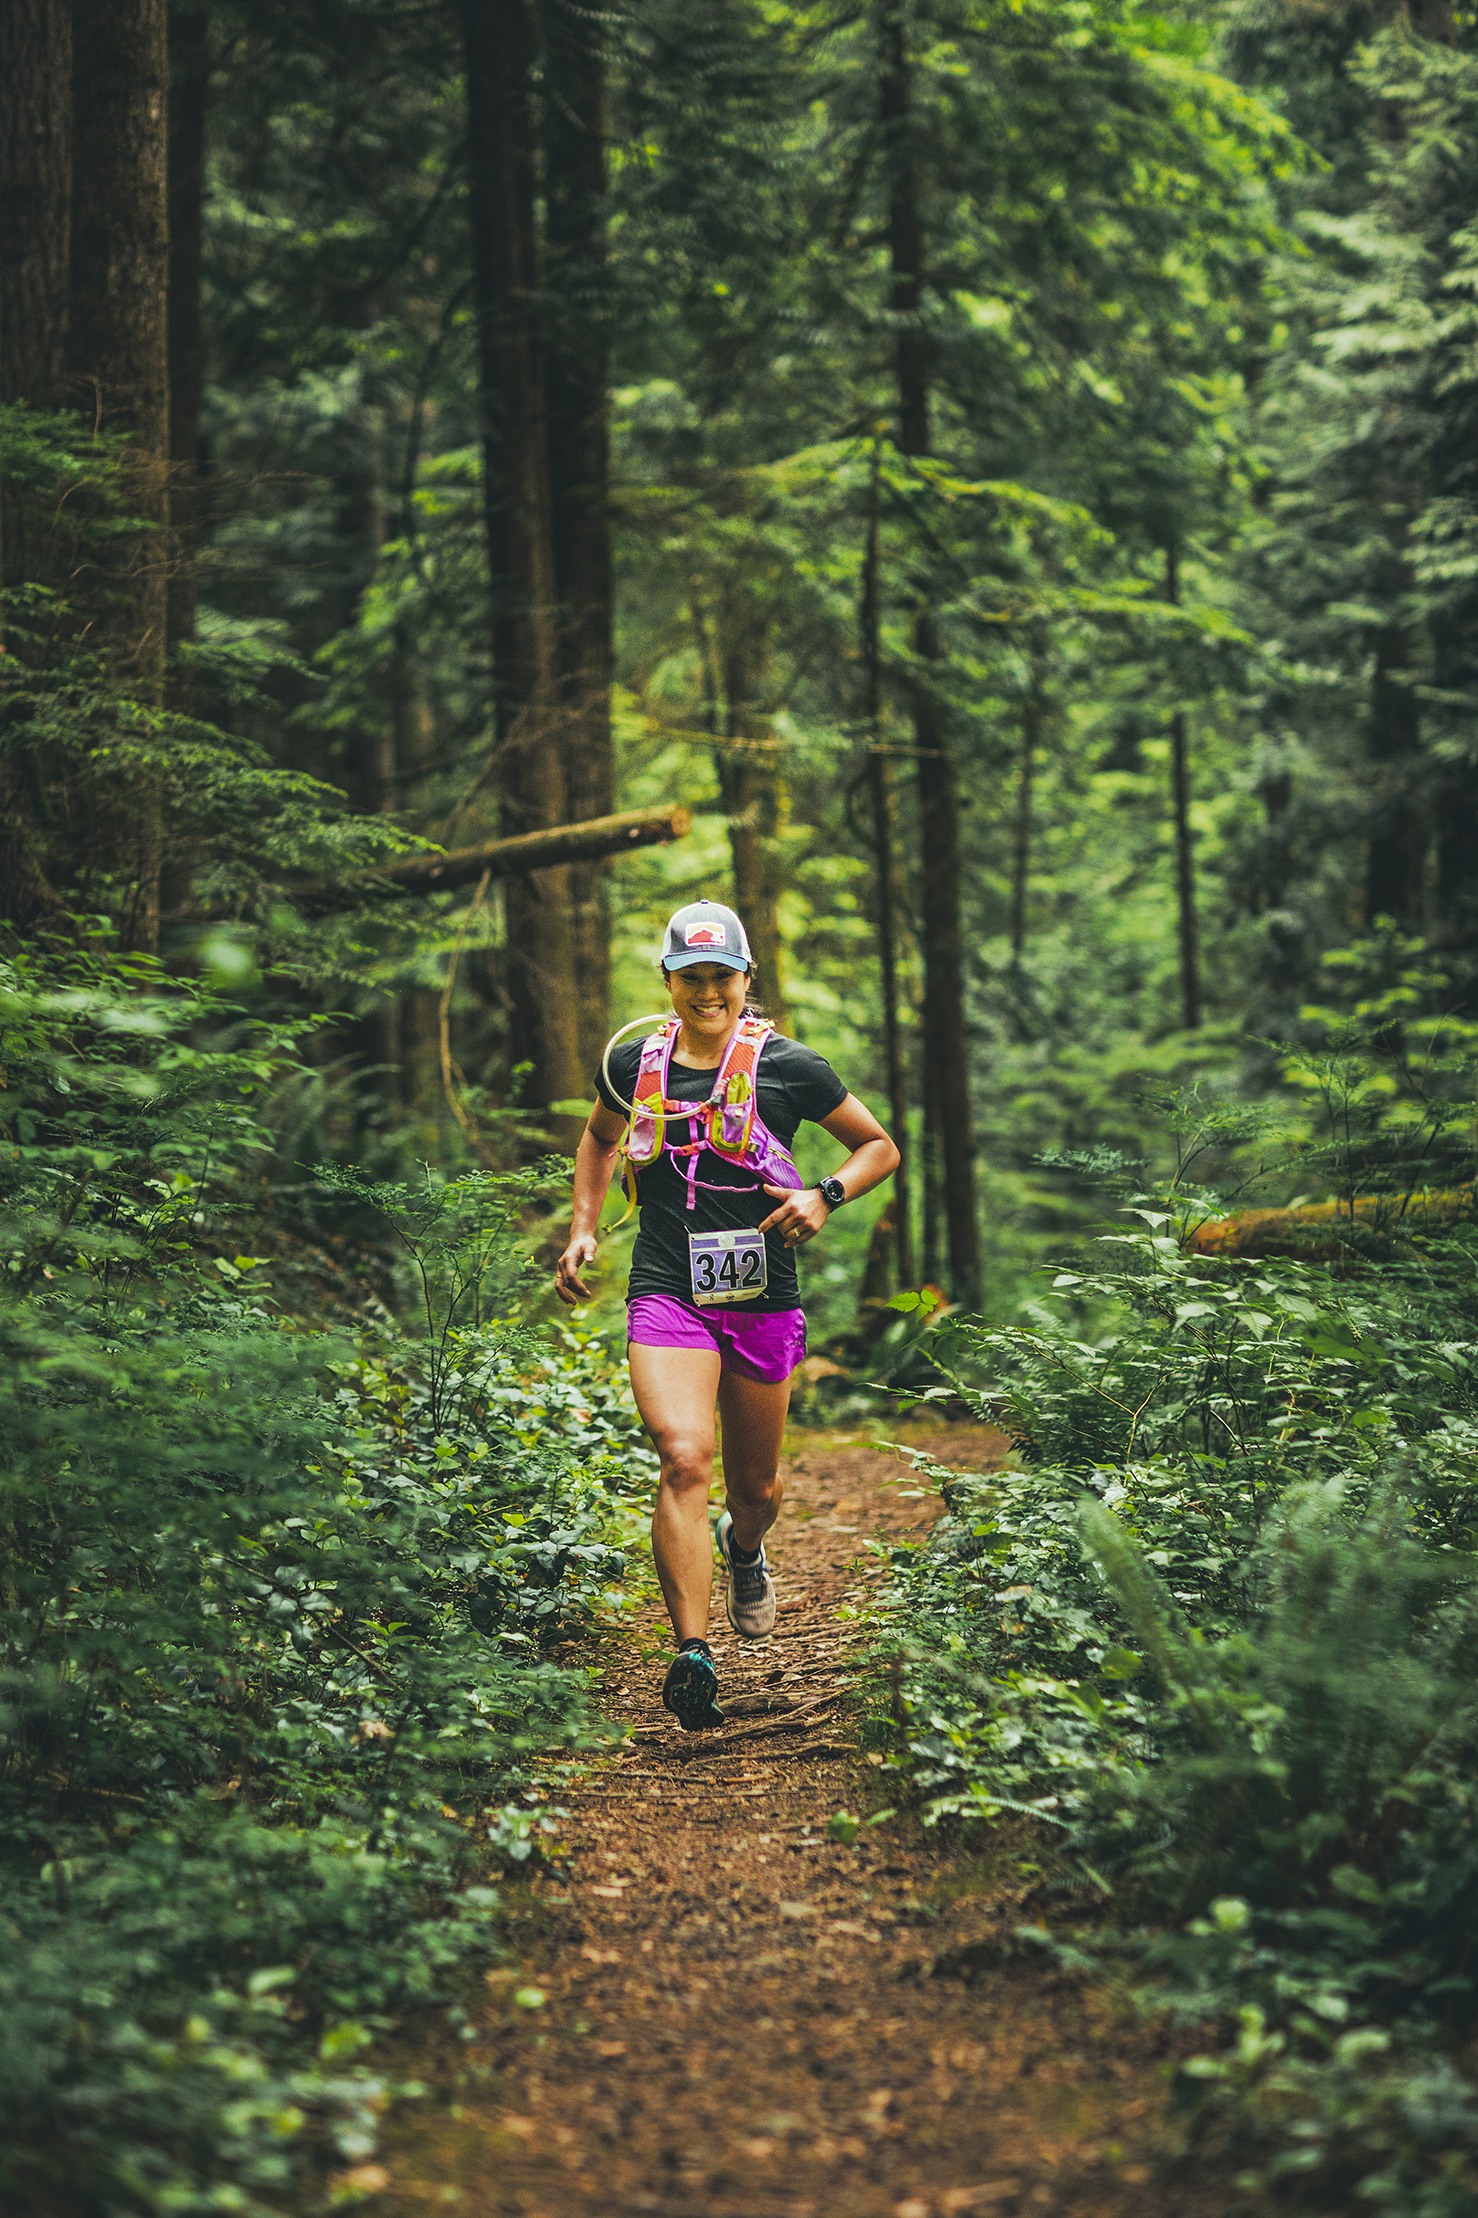 Fraser Valley Trail Races - Bear Mountain - IMG_2123 by Brice Ferre Studio - Vancouver Portrait Adventure and Athlete Photographer.jpg